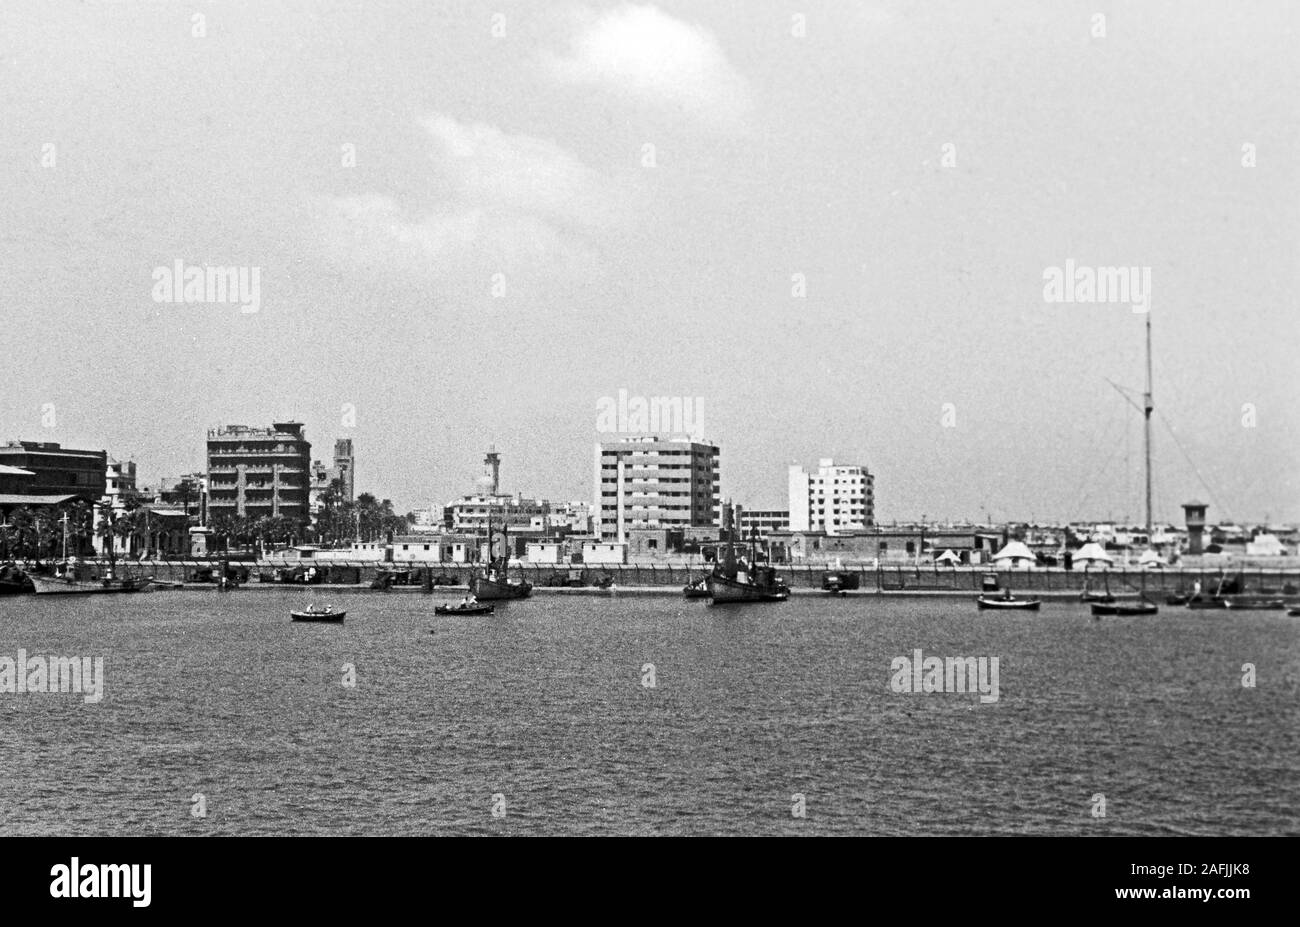 Port Said am Suezkanal, 1955. Port Said at Suez Canal, 1955. Stock Photo